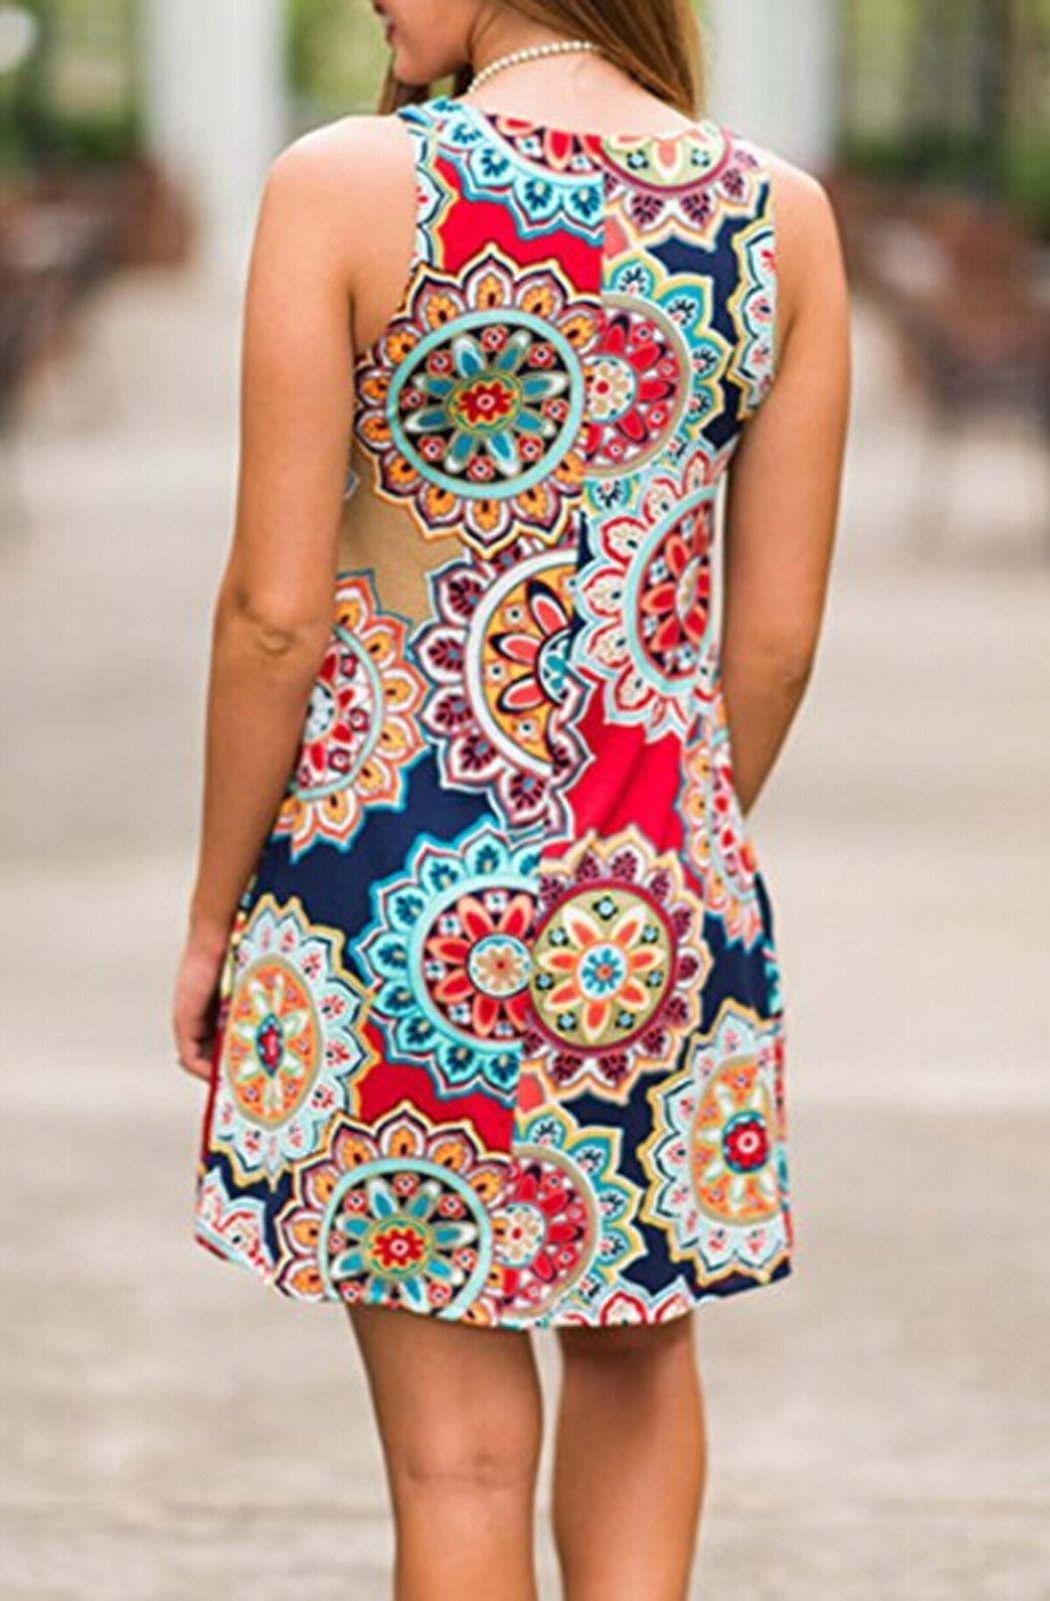 POGTMM Ladies Casual Ethnic Flower Print Beach Loose Tank Plus Size Short Dresses(Navy Blue,XXL) by POGTMM (Image #3)